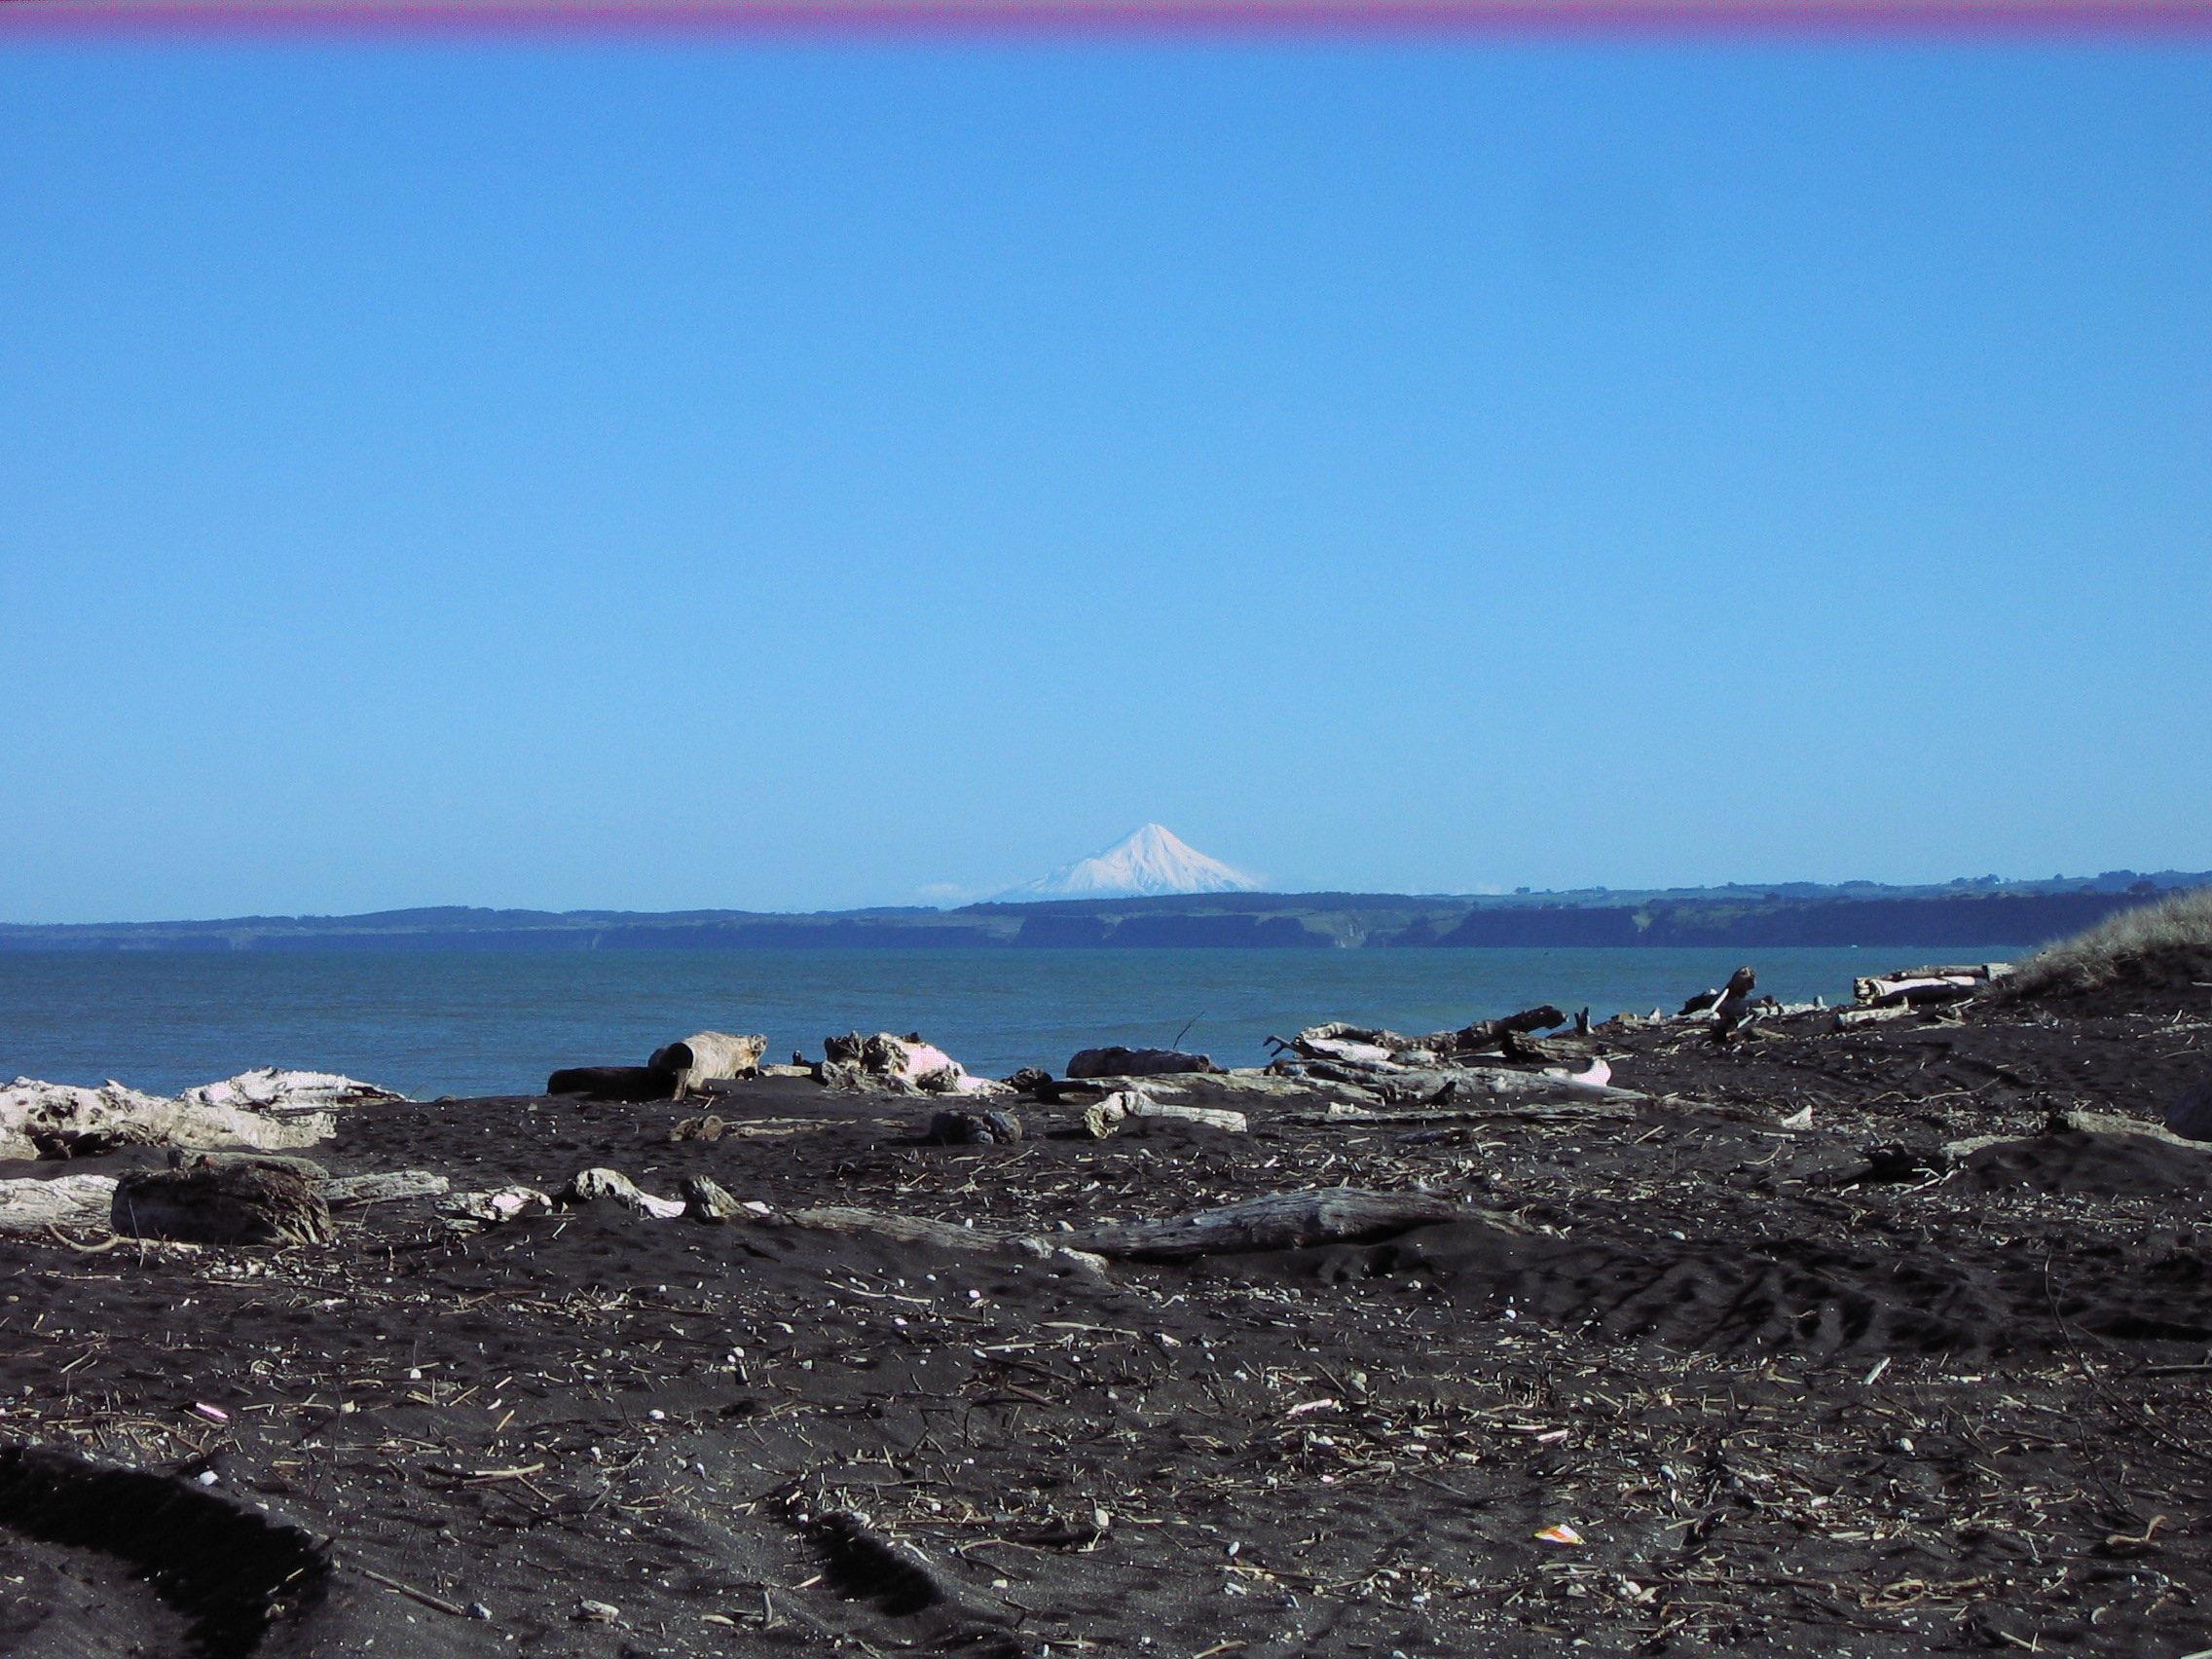 Castlecliff beach with view of Mt Taranaki in distance